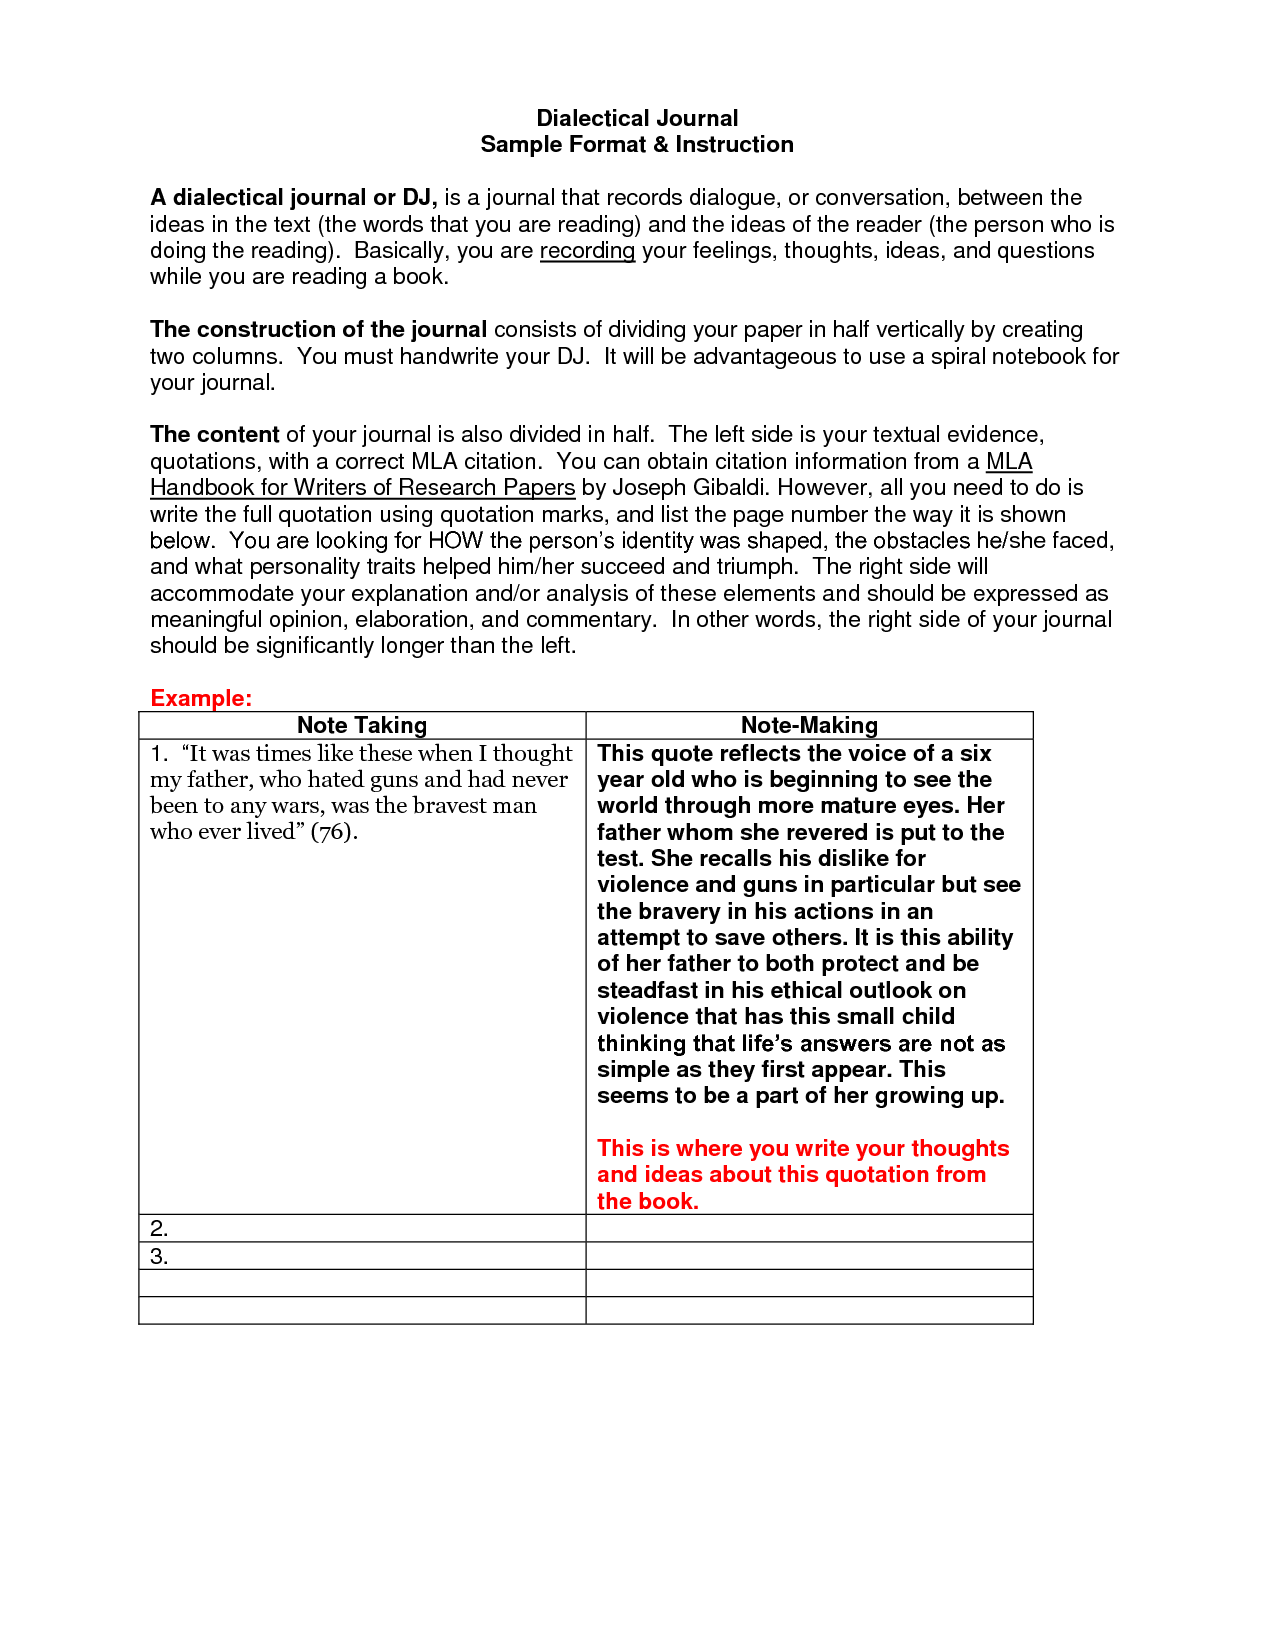 dialectical journal black like me Beloved dialectical journalpdf free download here sample dialectical journal entries sample dialectical journal: black like me by john howard griffin text.